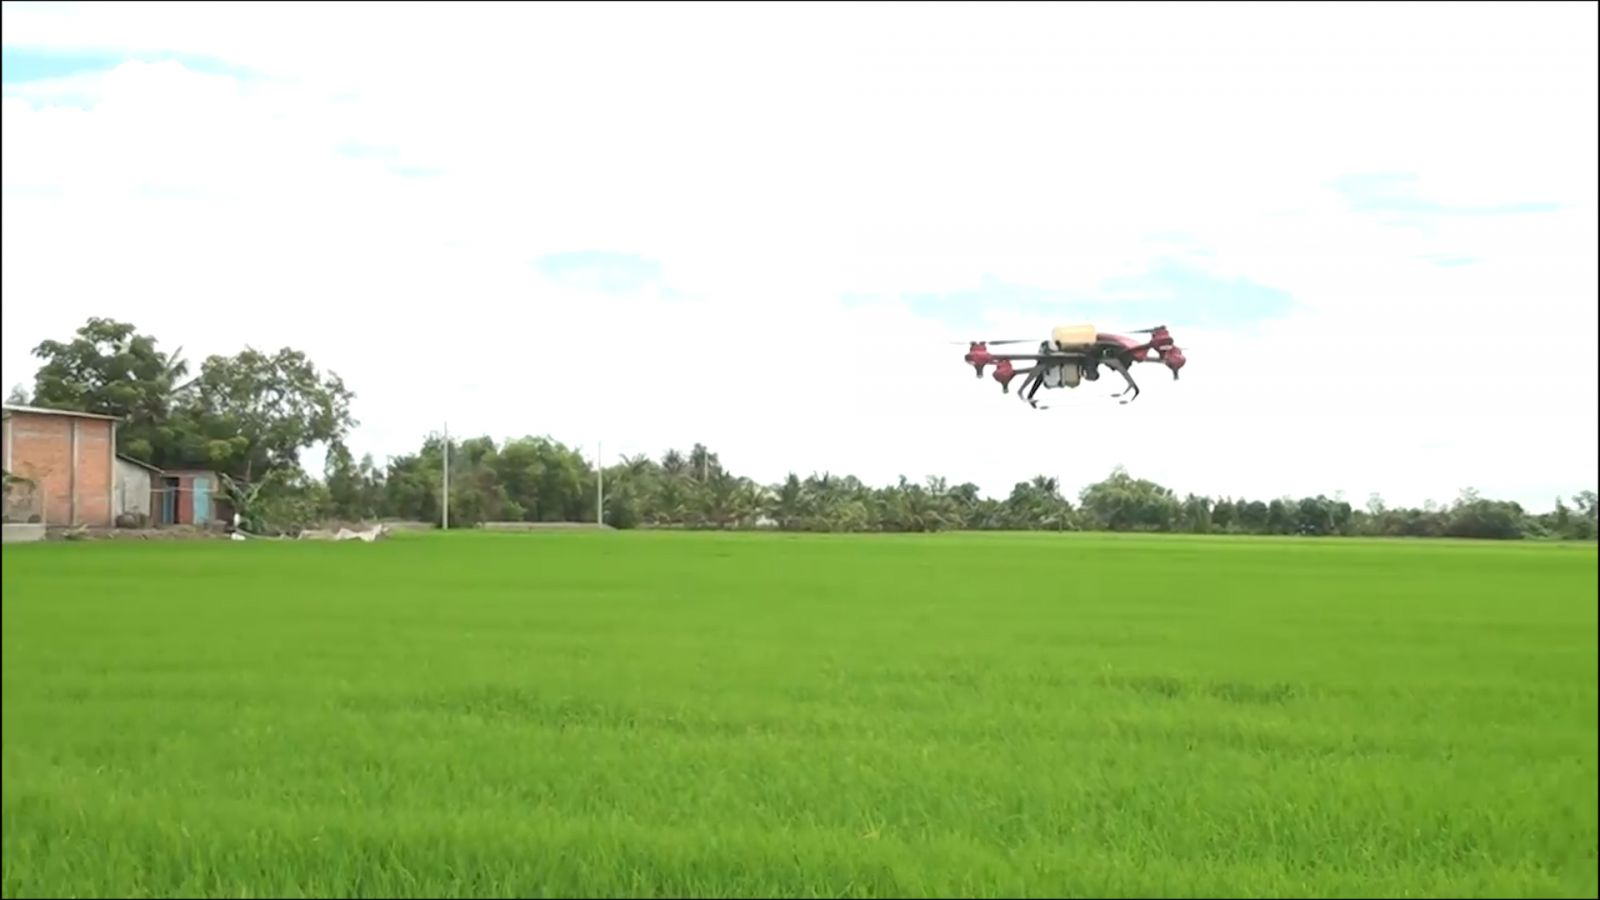 Unmanned aircraft is used to spray insecticide in the farming fields